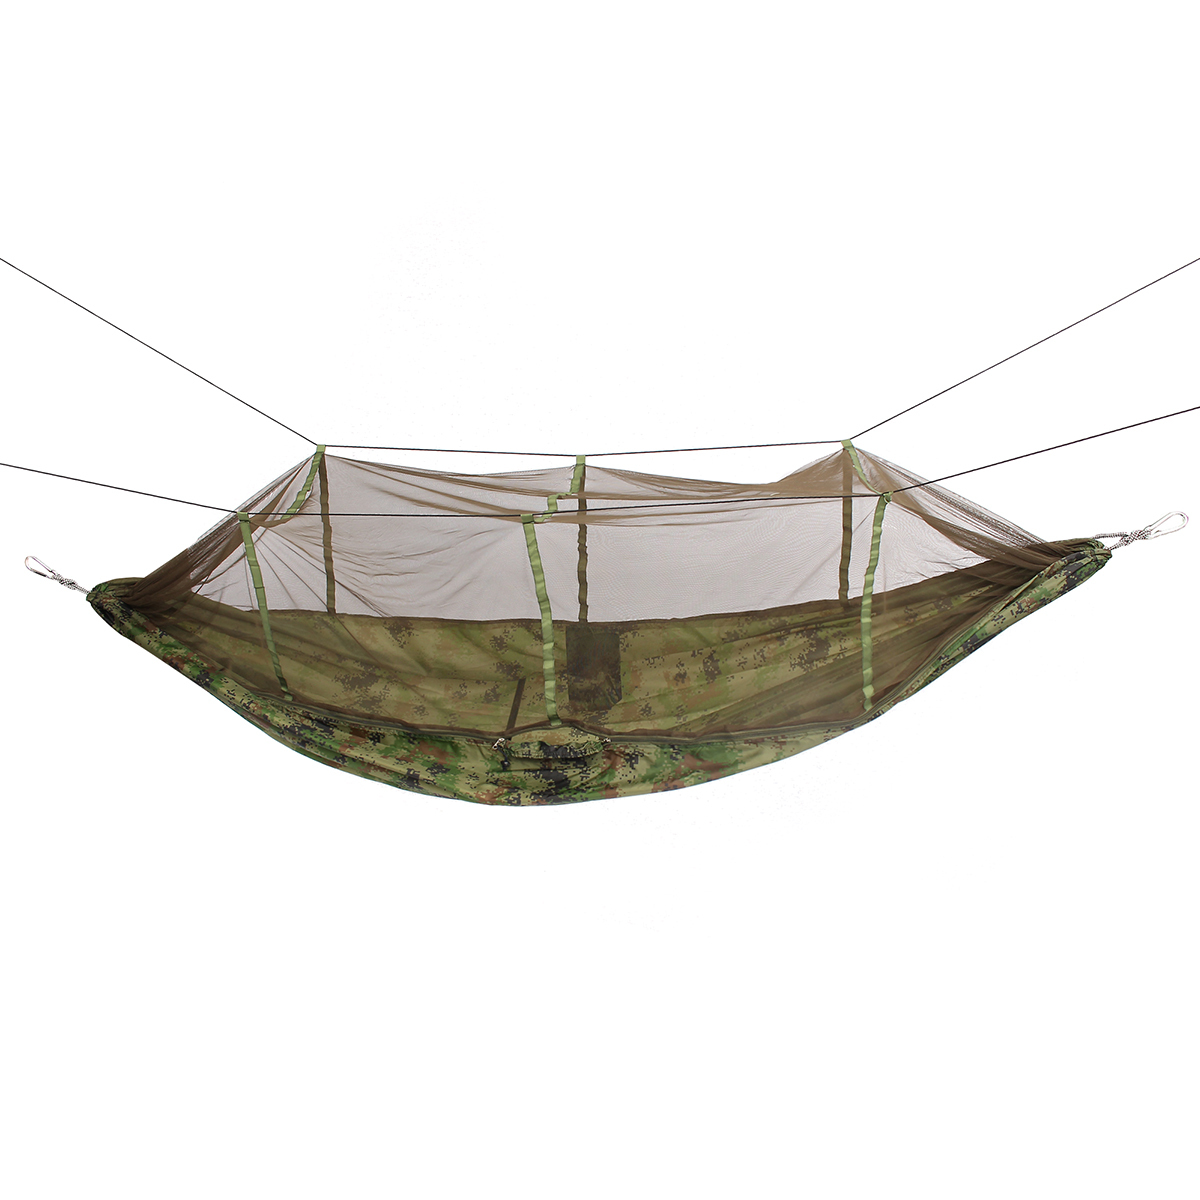 Double Person Travel Outdoor Camping Tent Hanging Hammock Folded Bed With Mosquito Net by